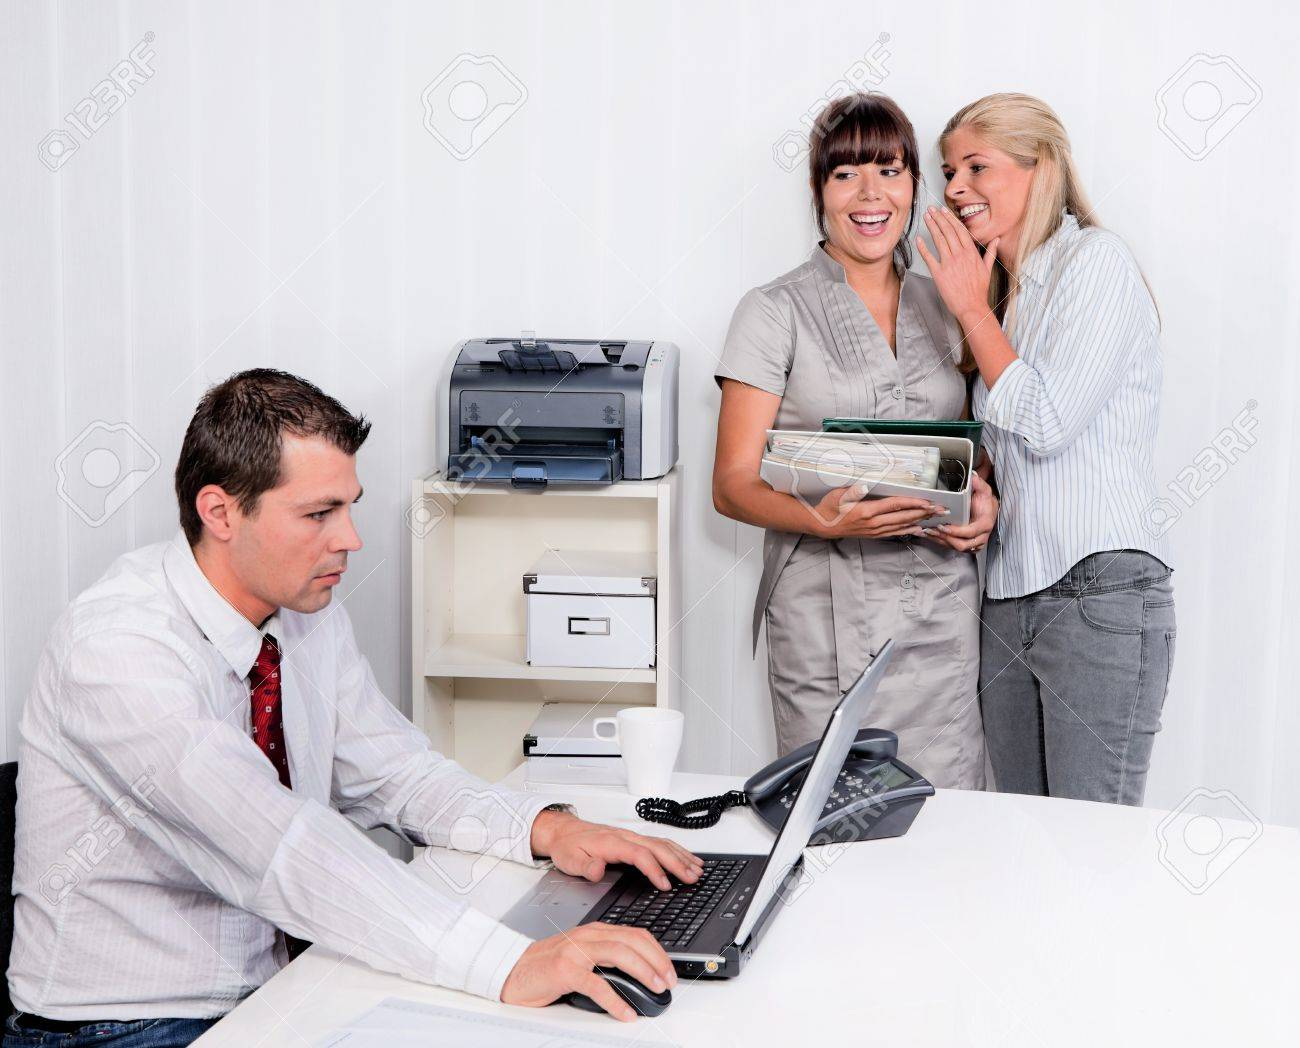 bullying in the workplace an office. two laugh about colleagues Stock Photo - 12080672